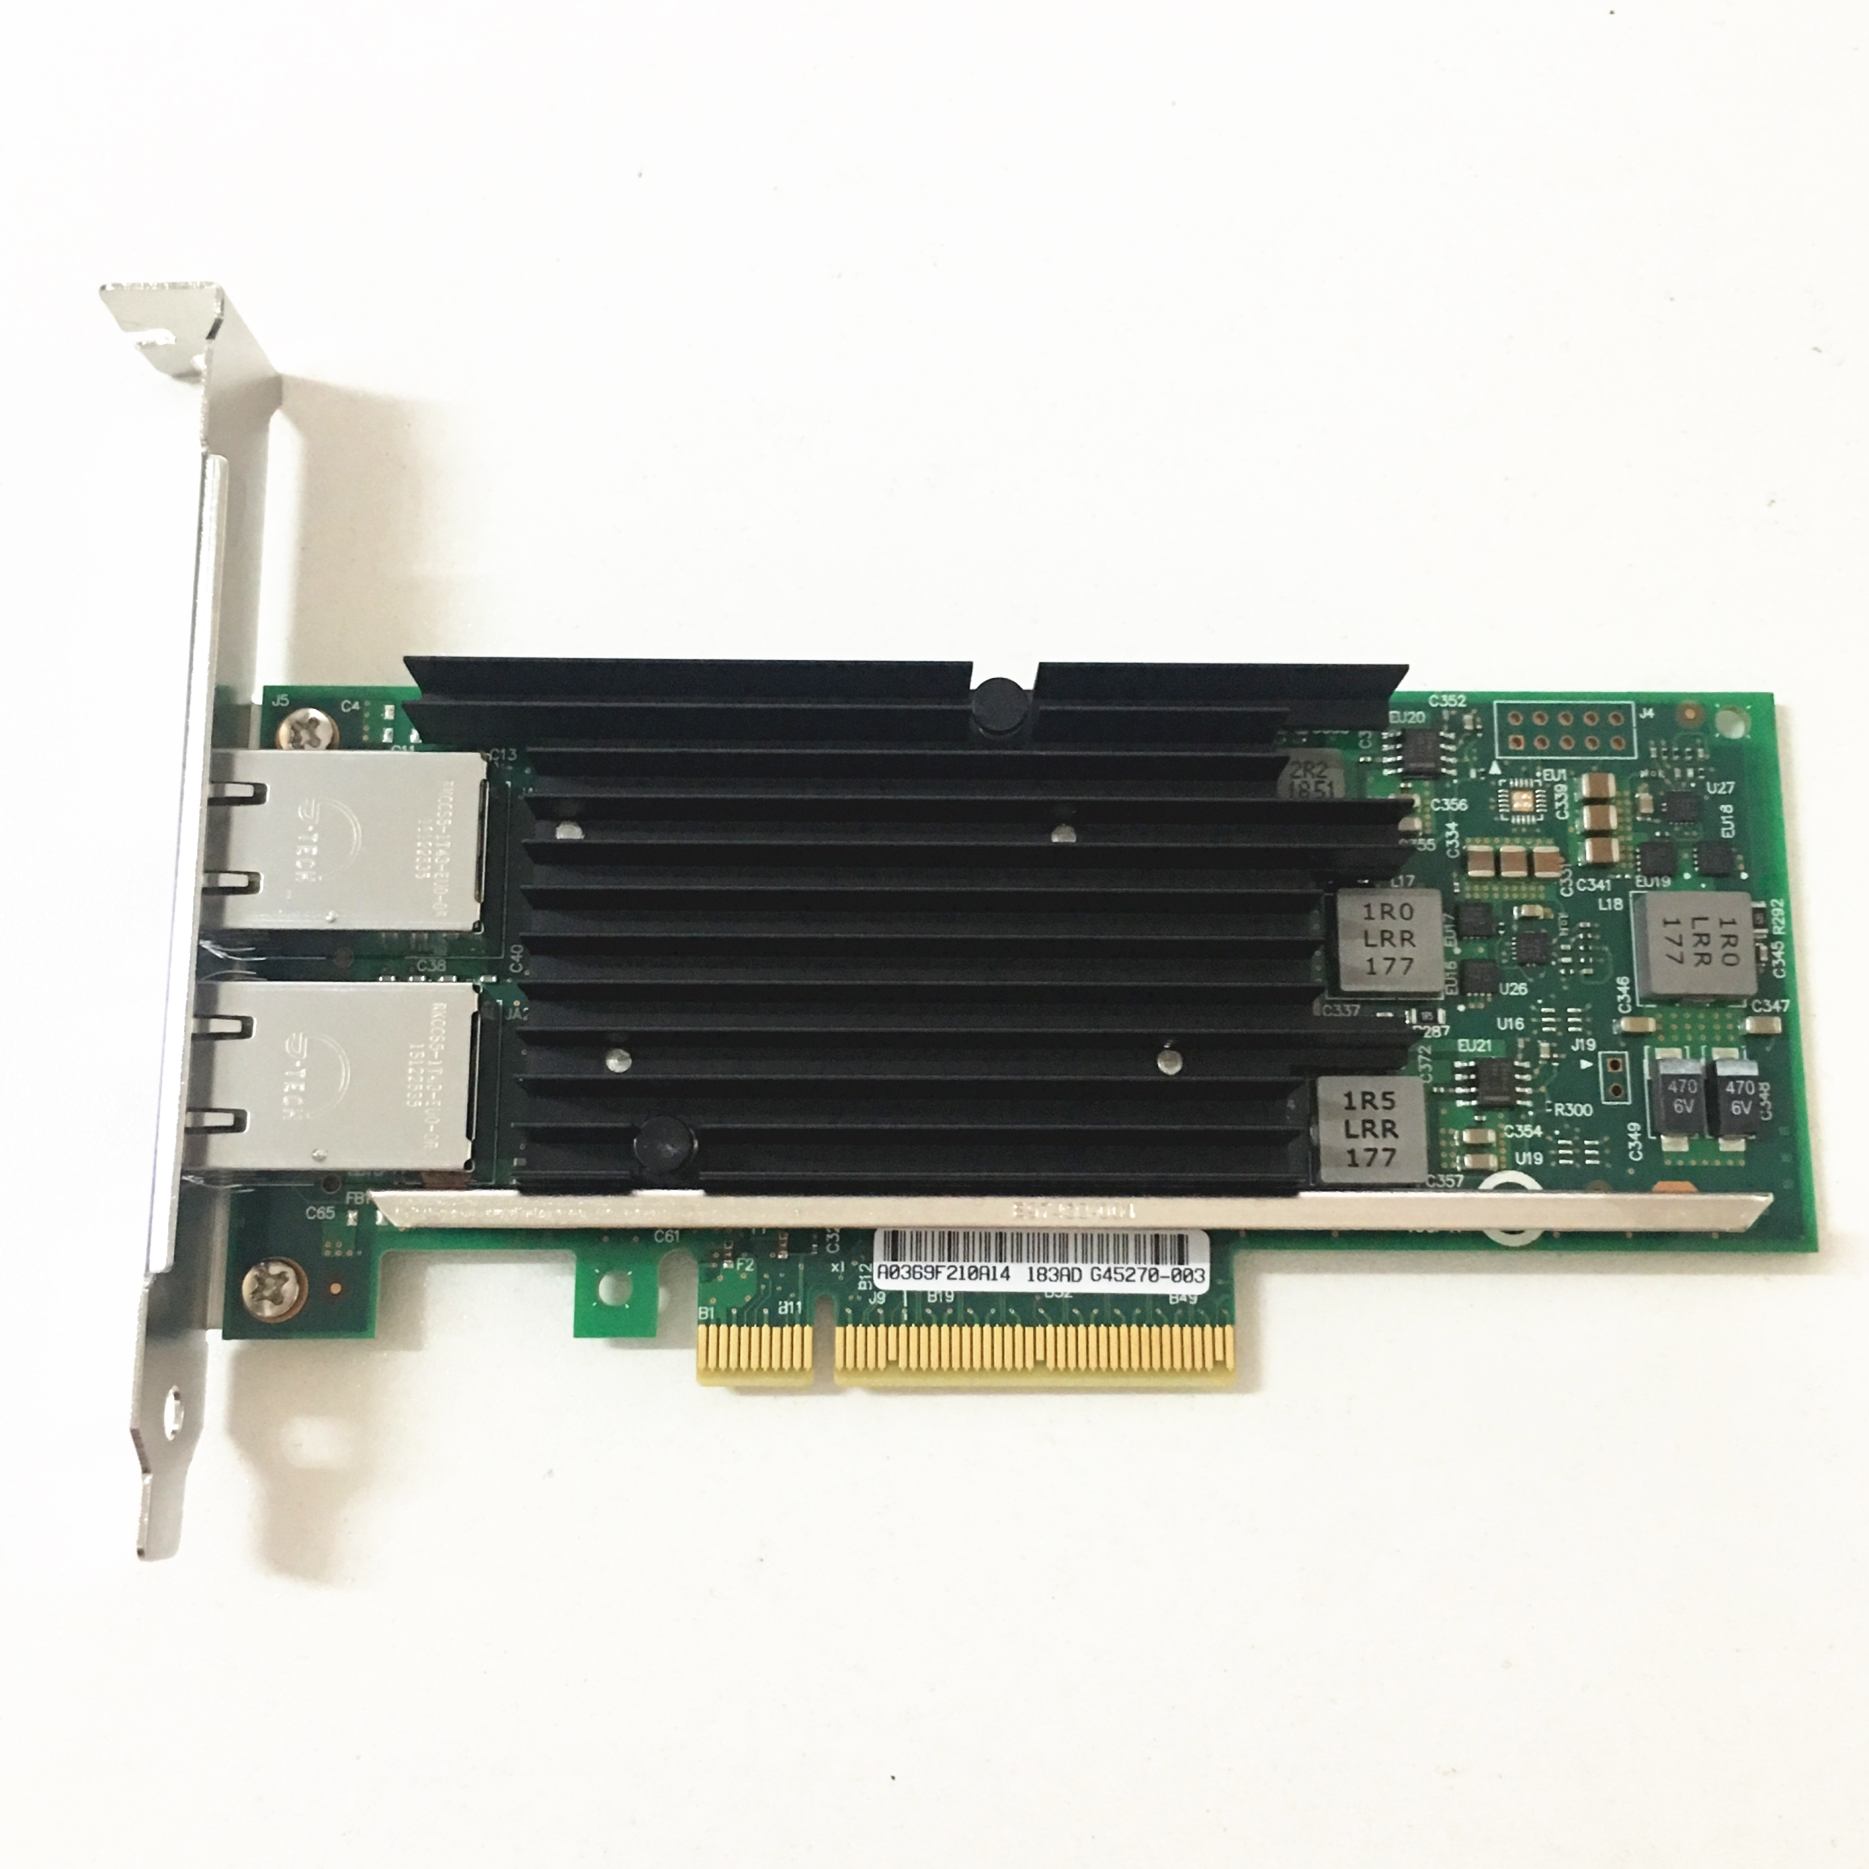 China OEM Unit X540 T2 PCI E X8 dual ports RJ45 Ethernet Network Adapter 10Gbps Server Network card New